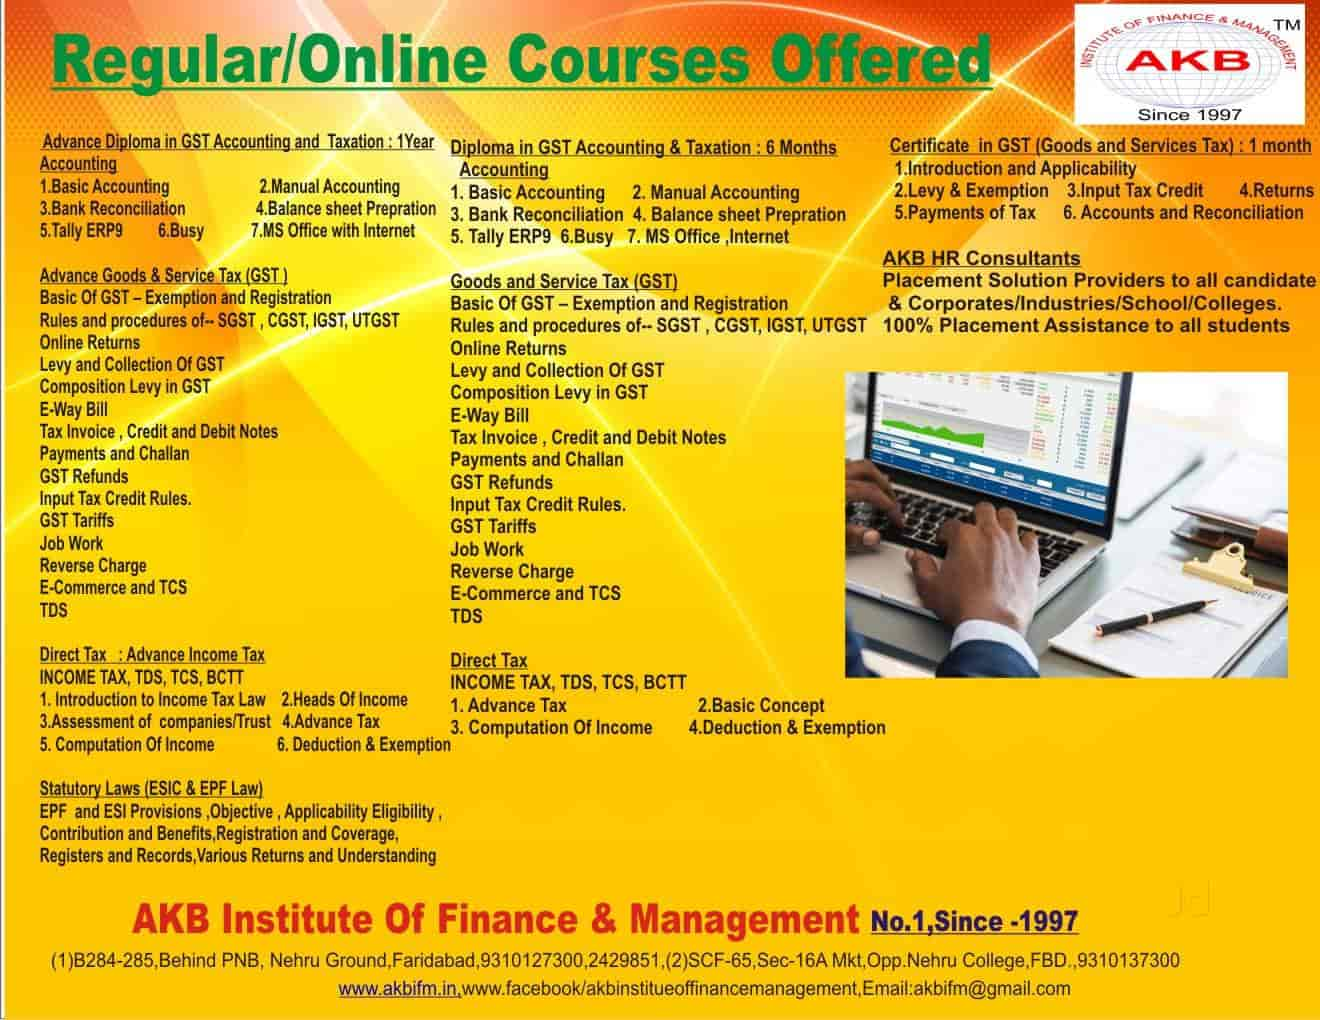 AKB Institute Finance And Management, New Industrial